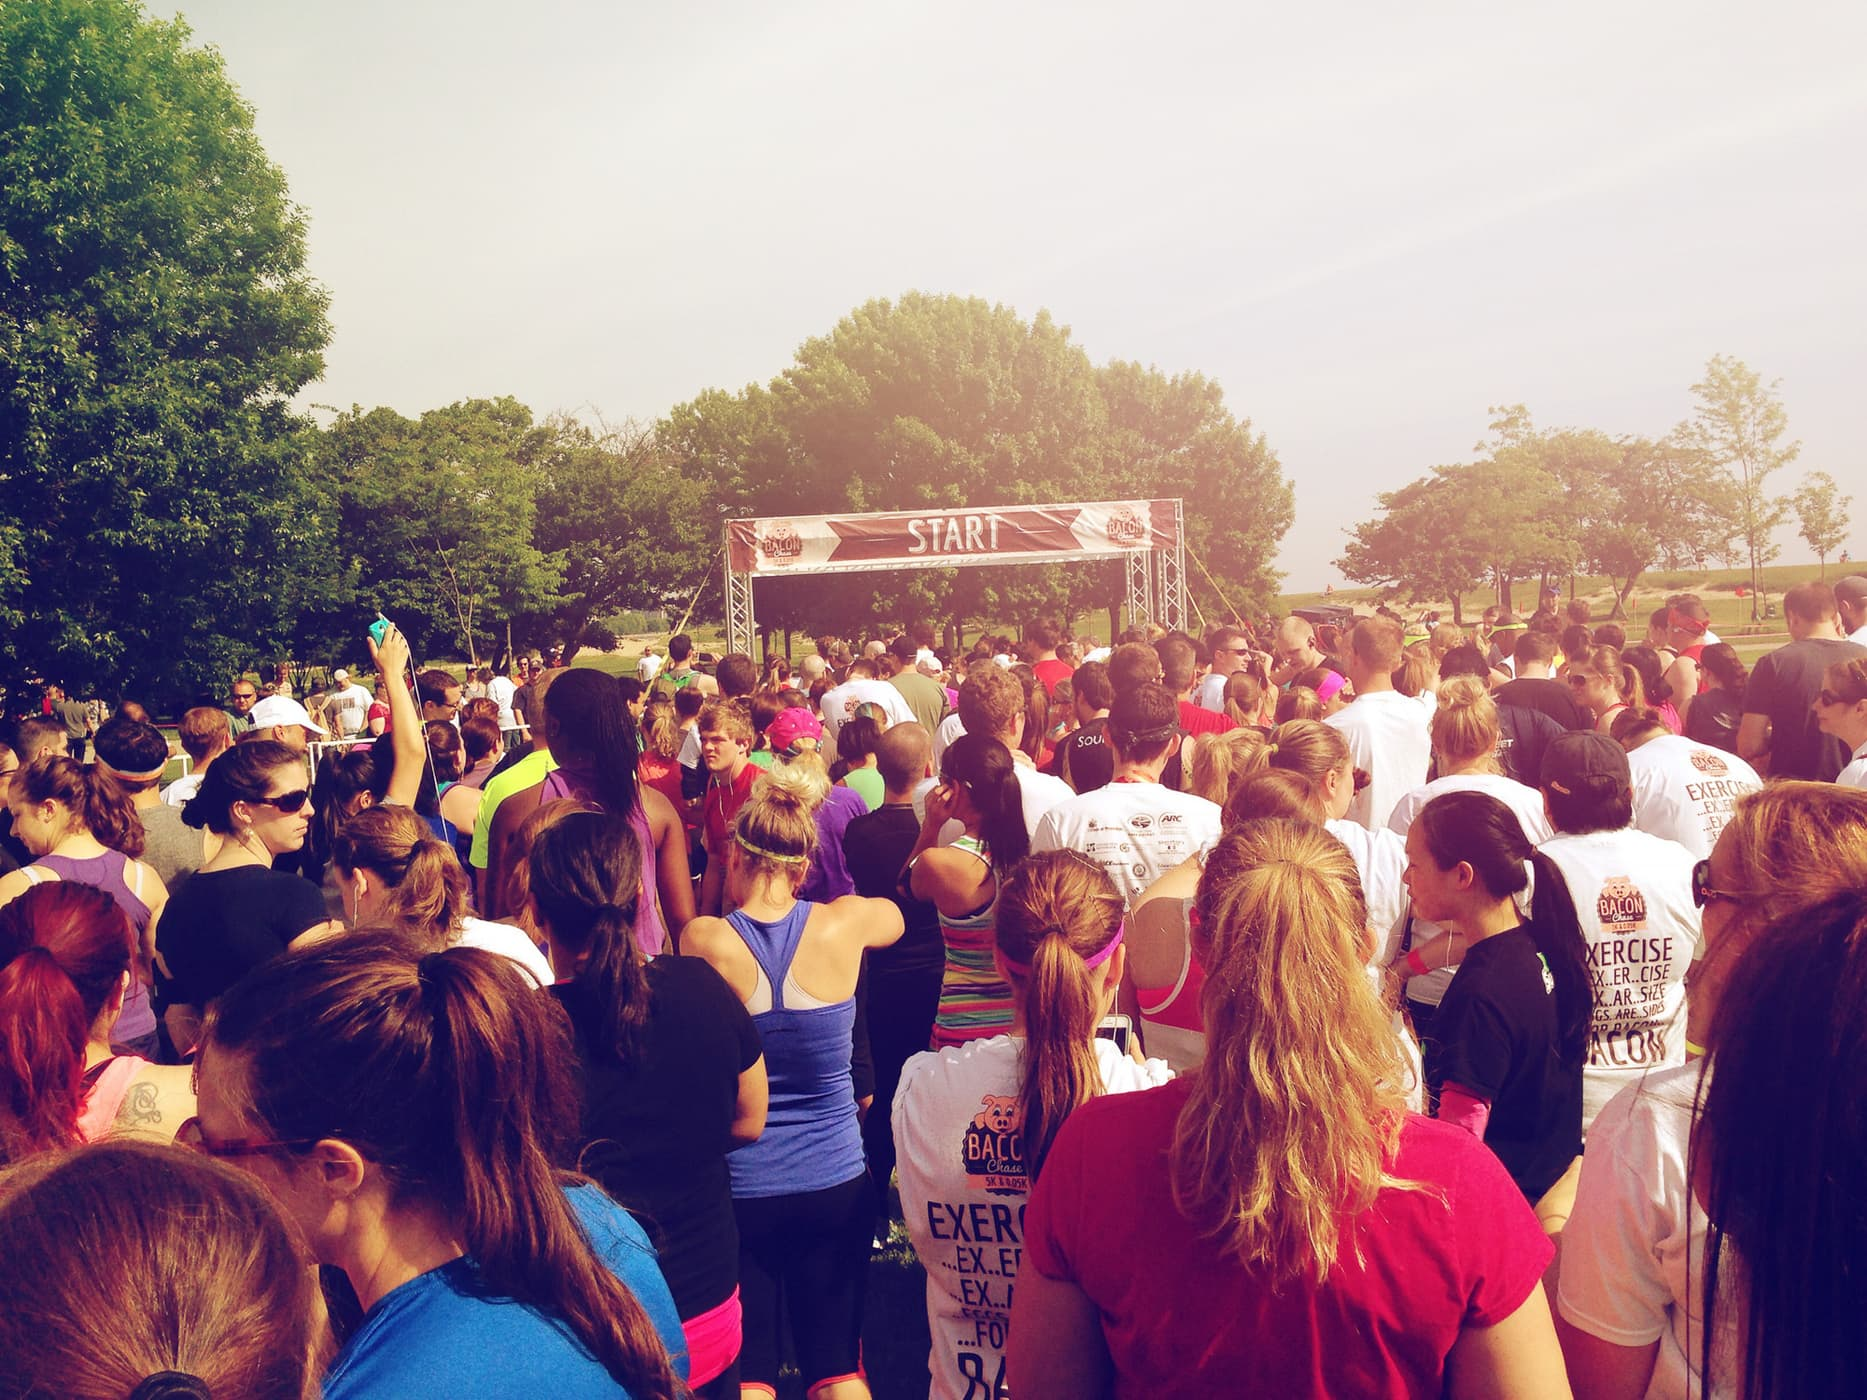 Approaching the start of the Bacon Chase 5K in Chicago, Illinois.